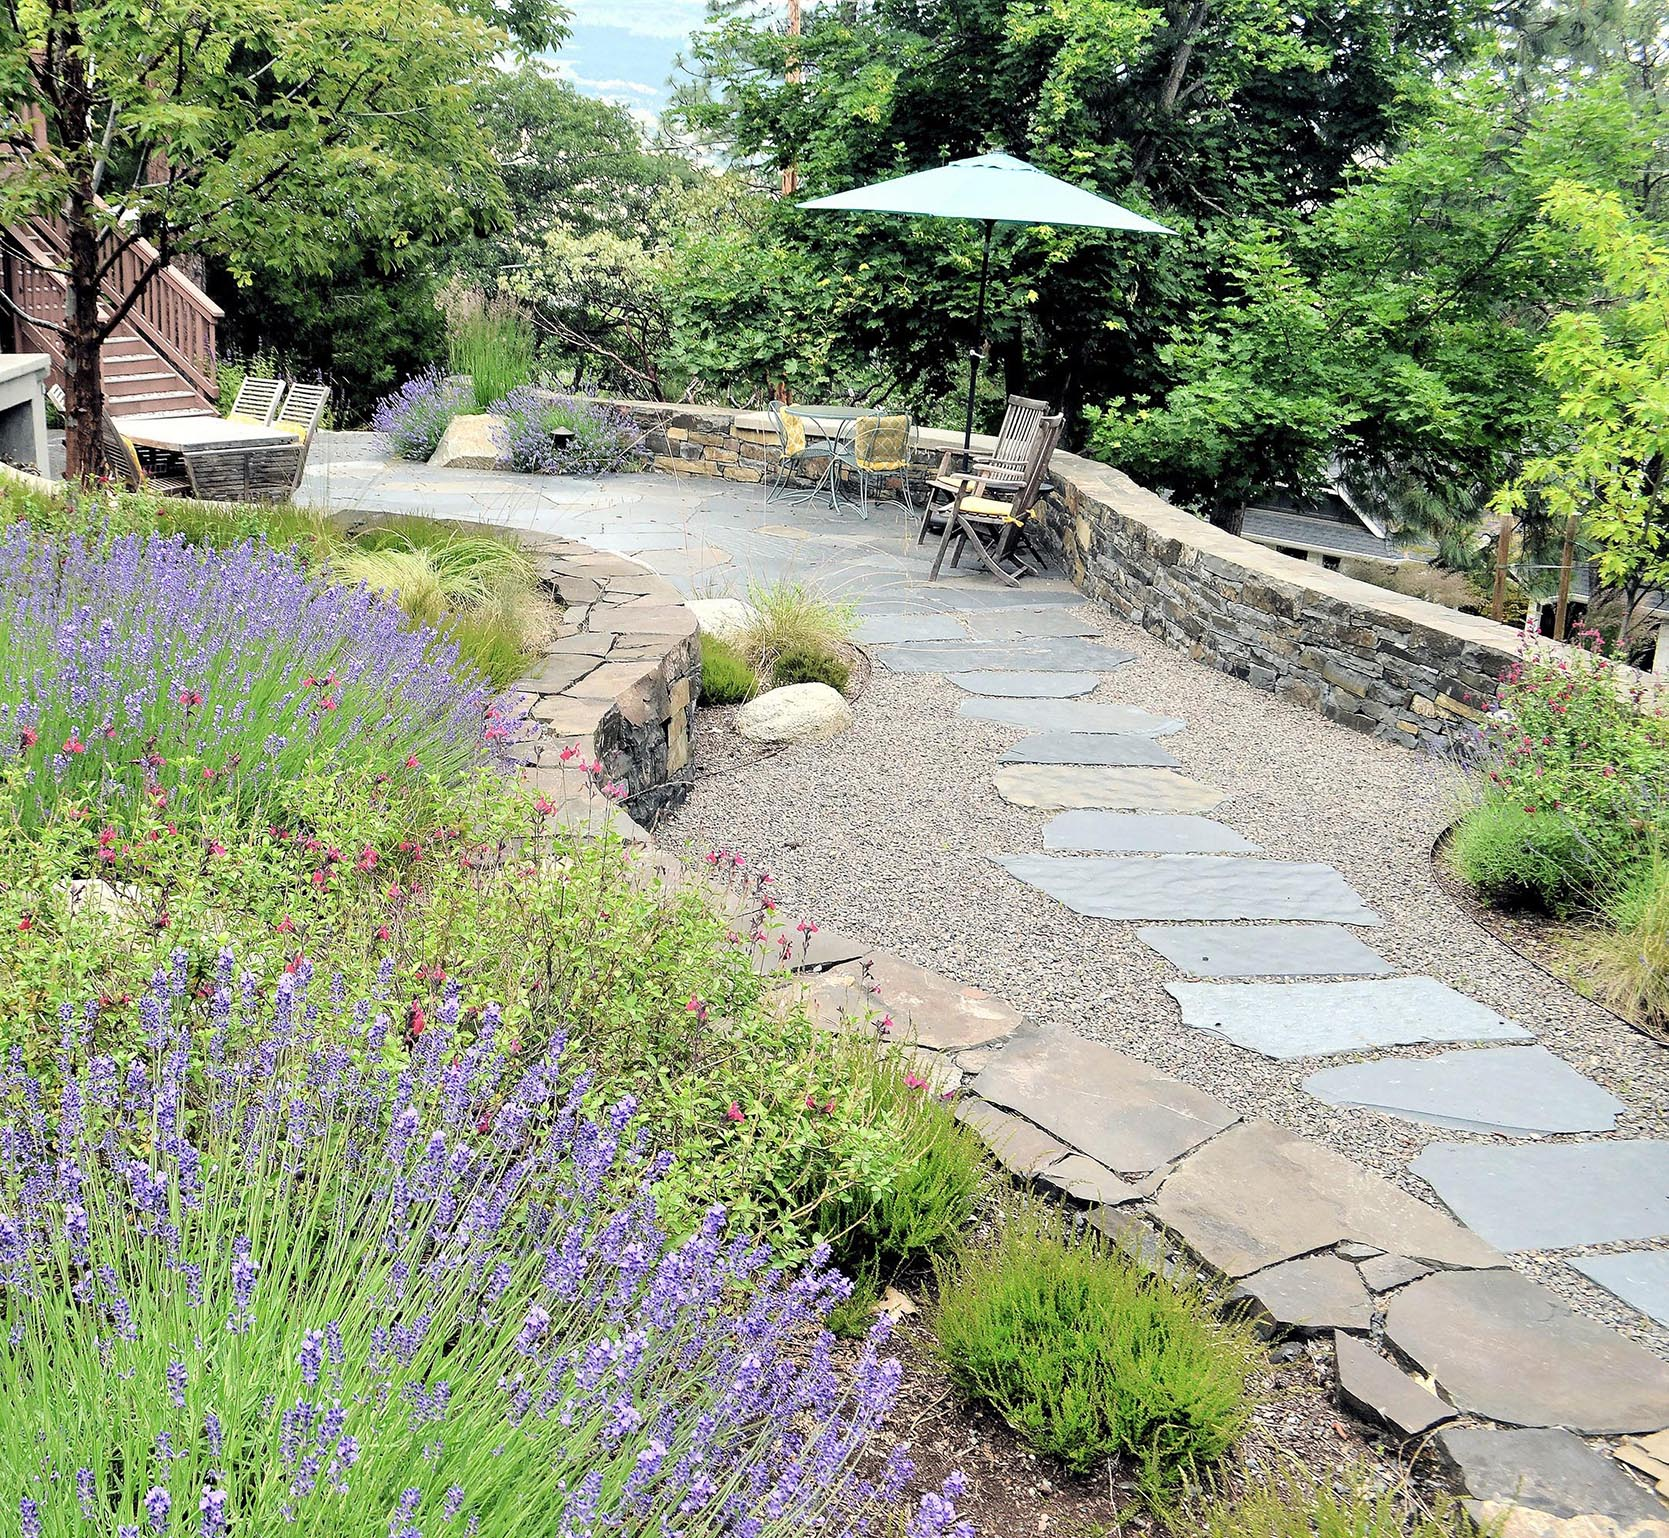 Patio view from bedroom deck looking at lavender blooms and stacked stone retaining walls